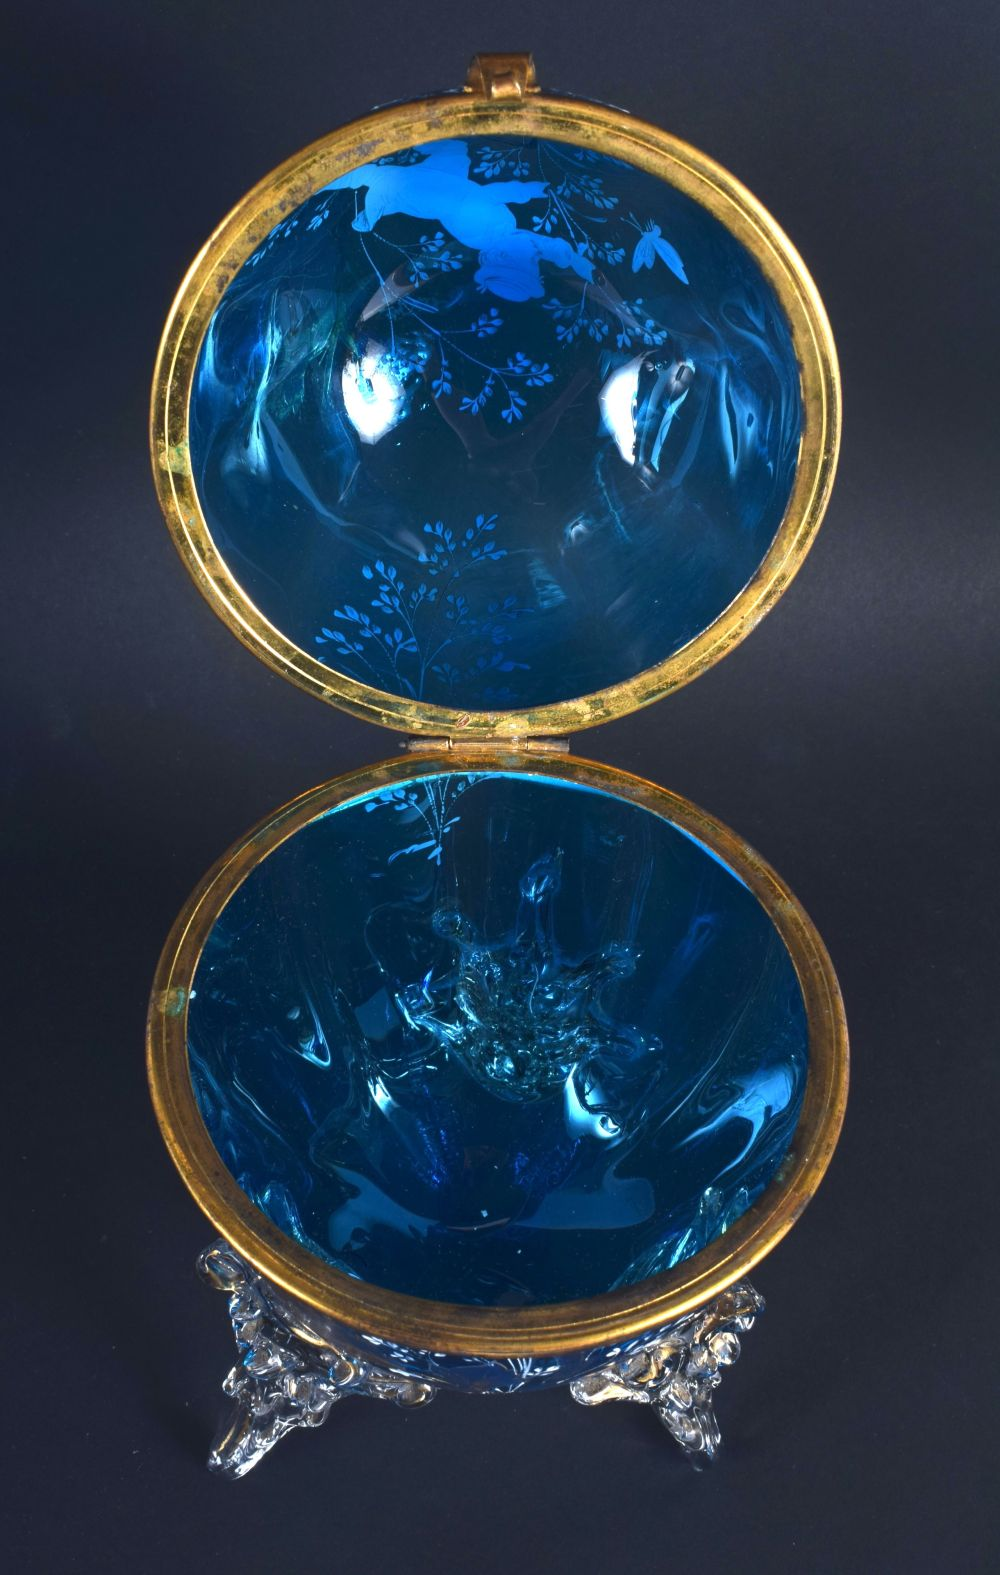 AN ANTIQUE MARY GREGORY STYLE ENAMELLED BLUE GLASS EGG SHAPED BOX painted with figures. 20 cm x 10 c - Image 4 of 4